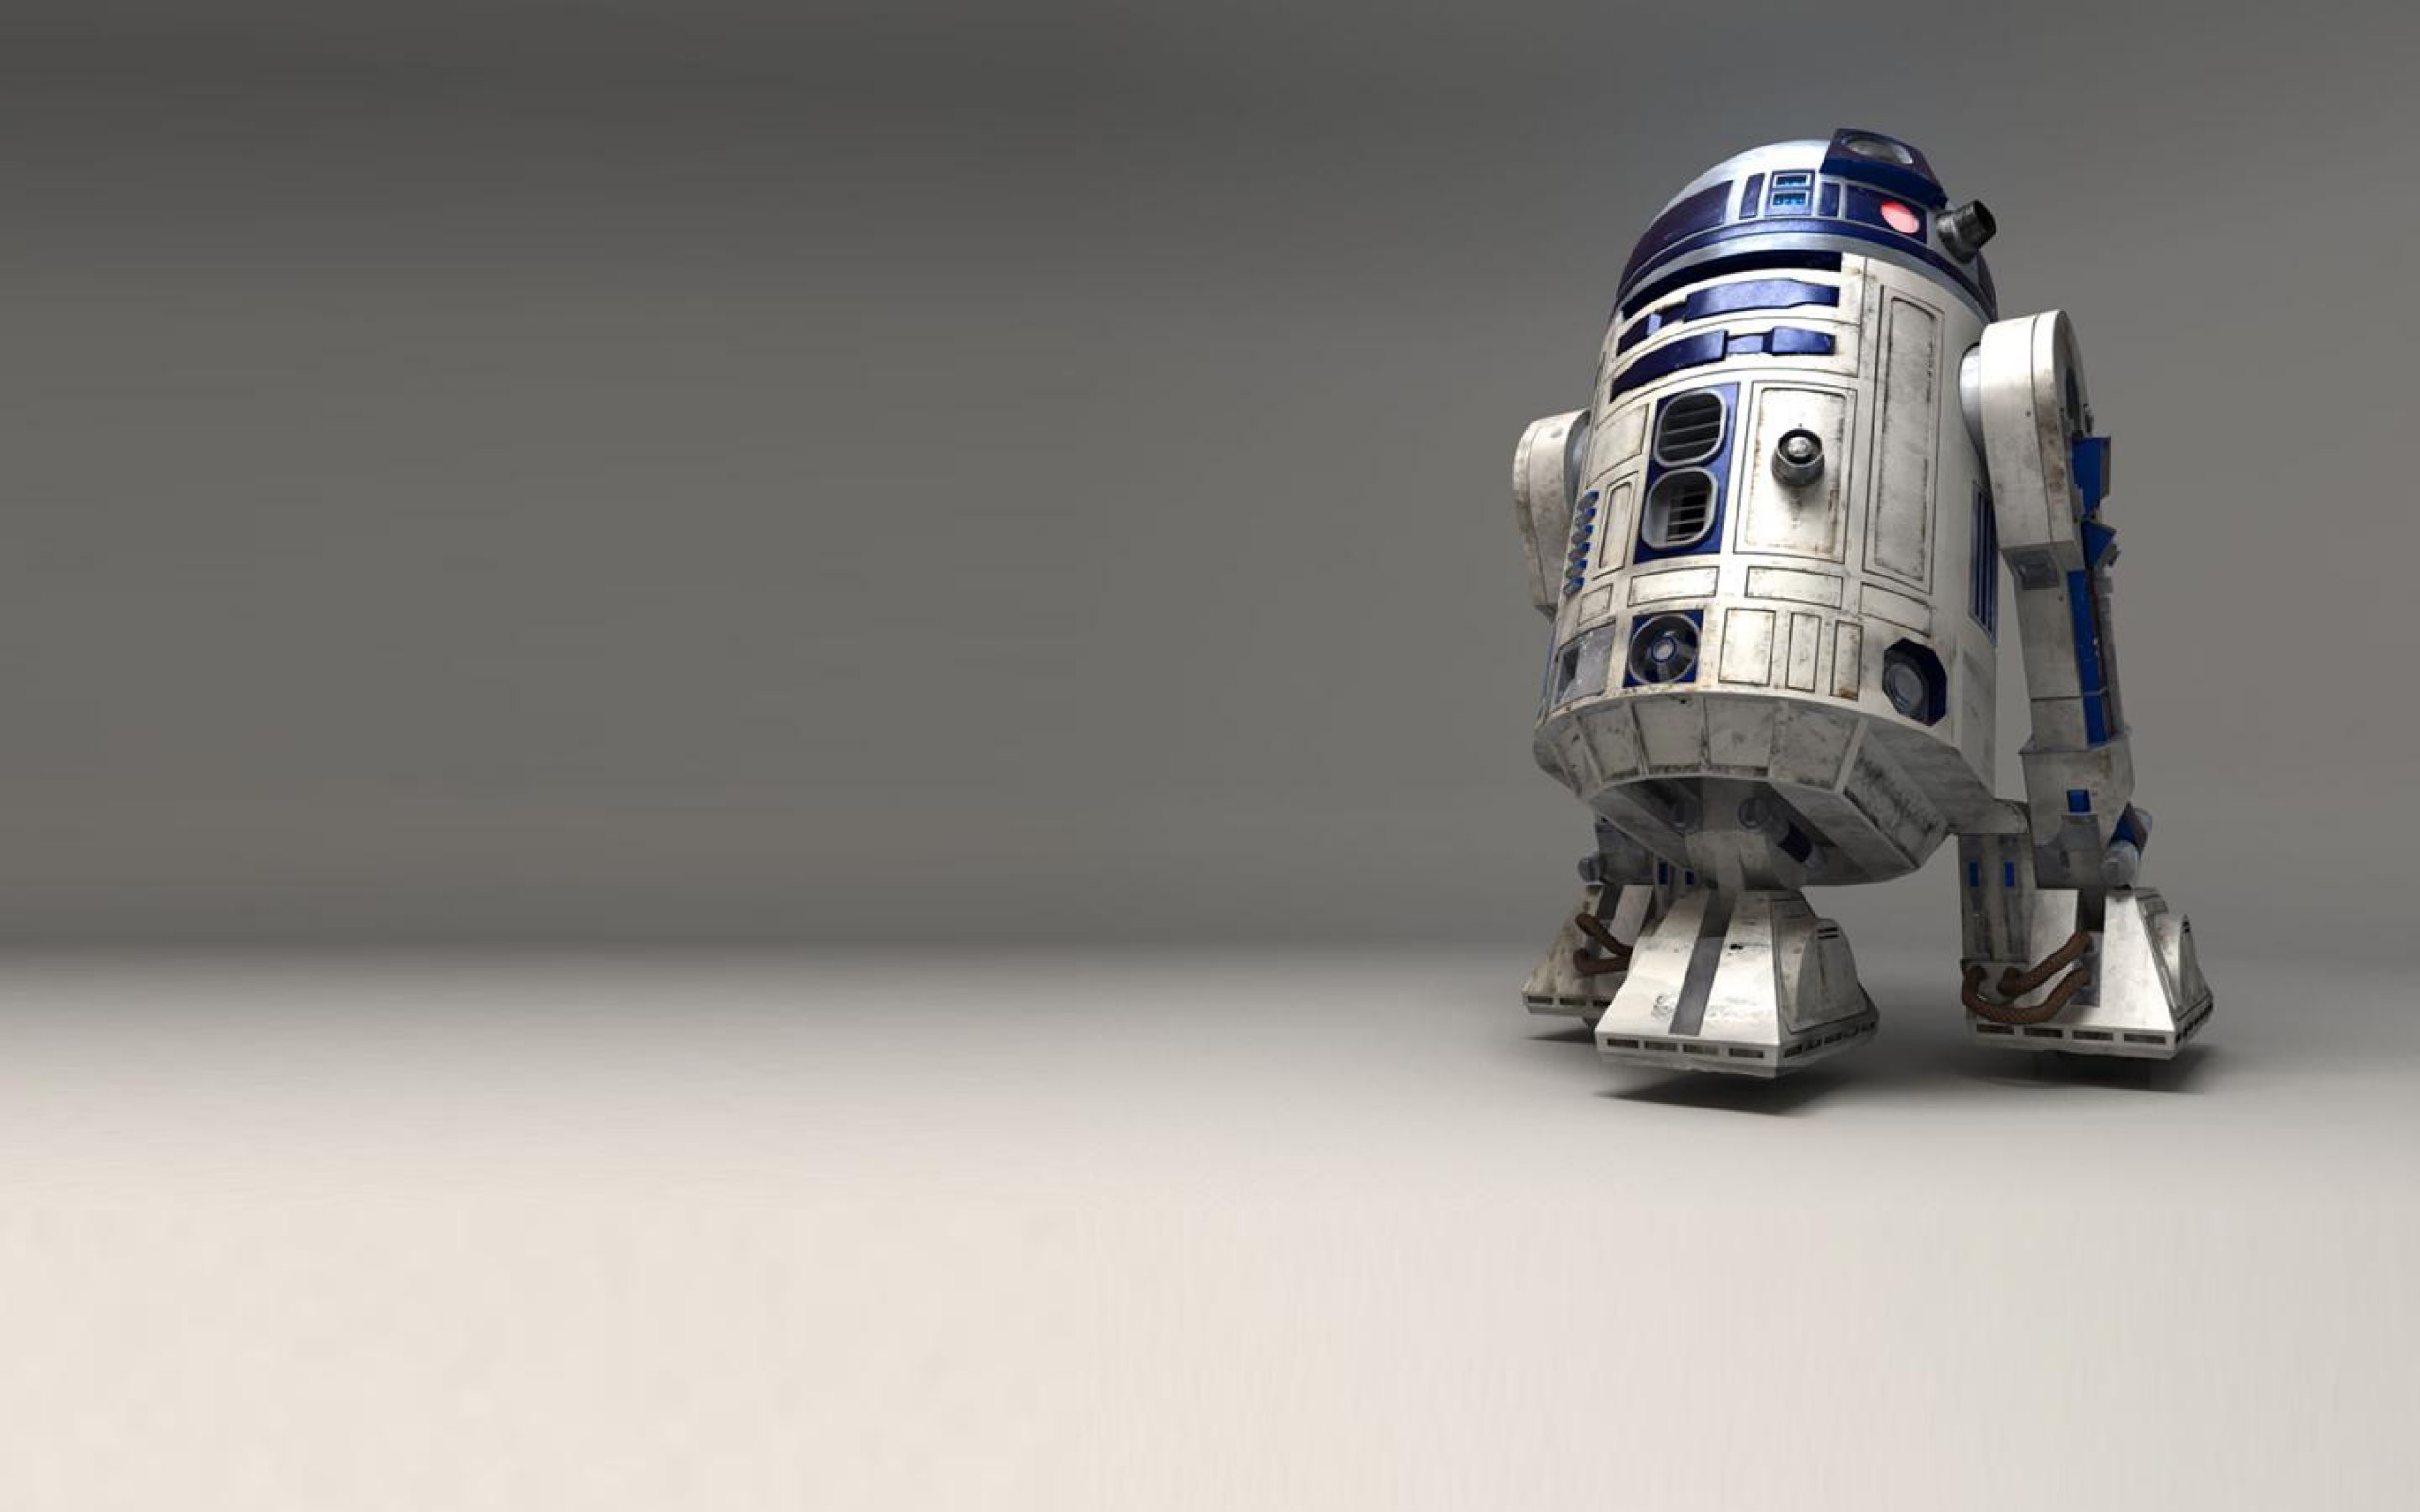 Imágenes y wallpapers de Star wars (curiosos y excelentes)